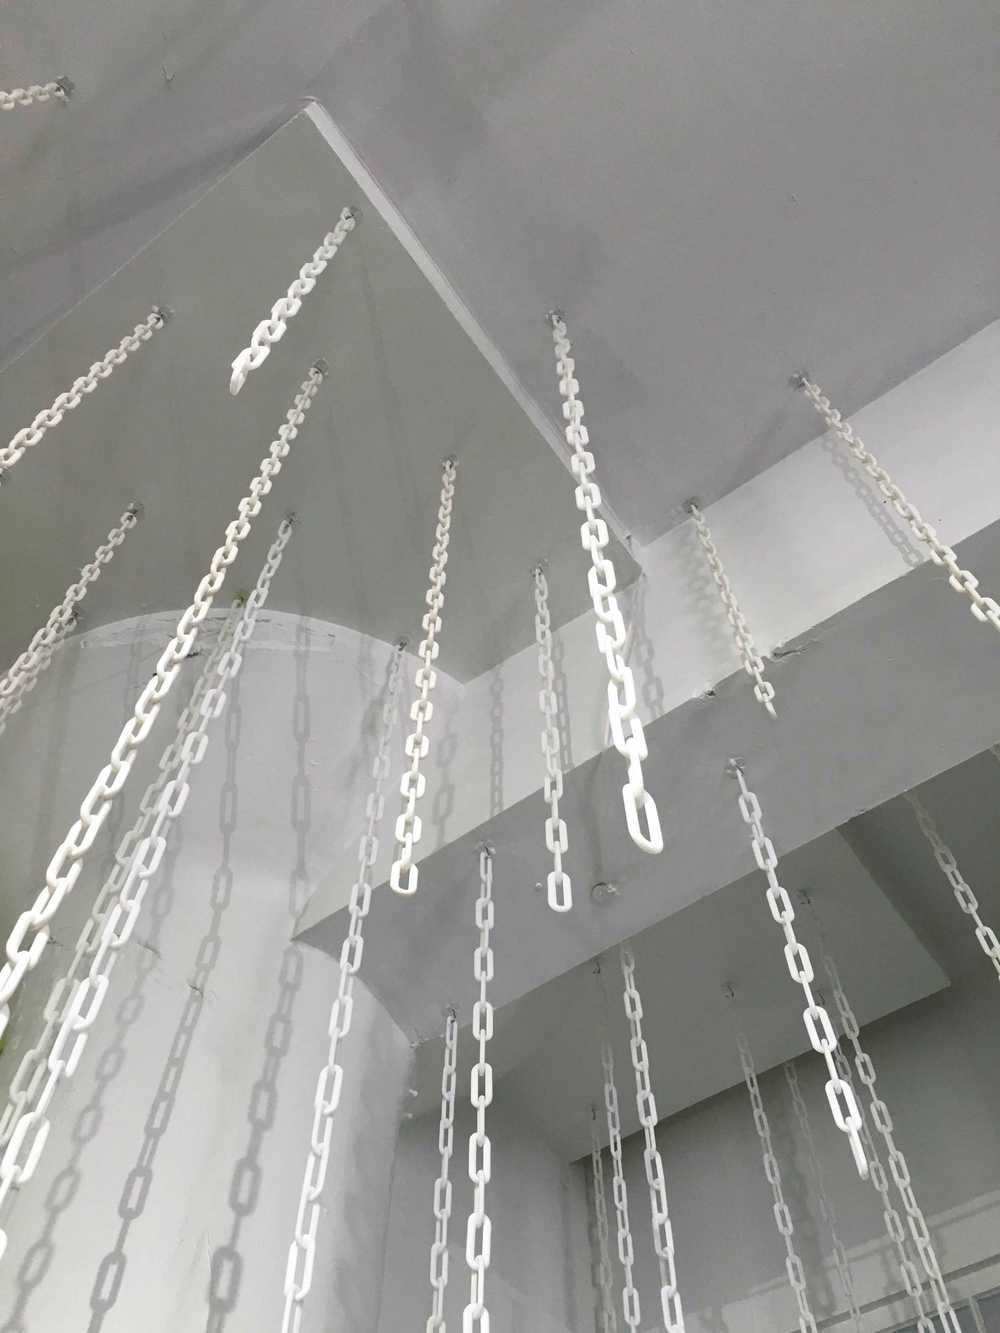 white-chains-ceiling.jpg